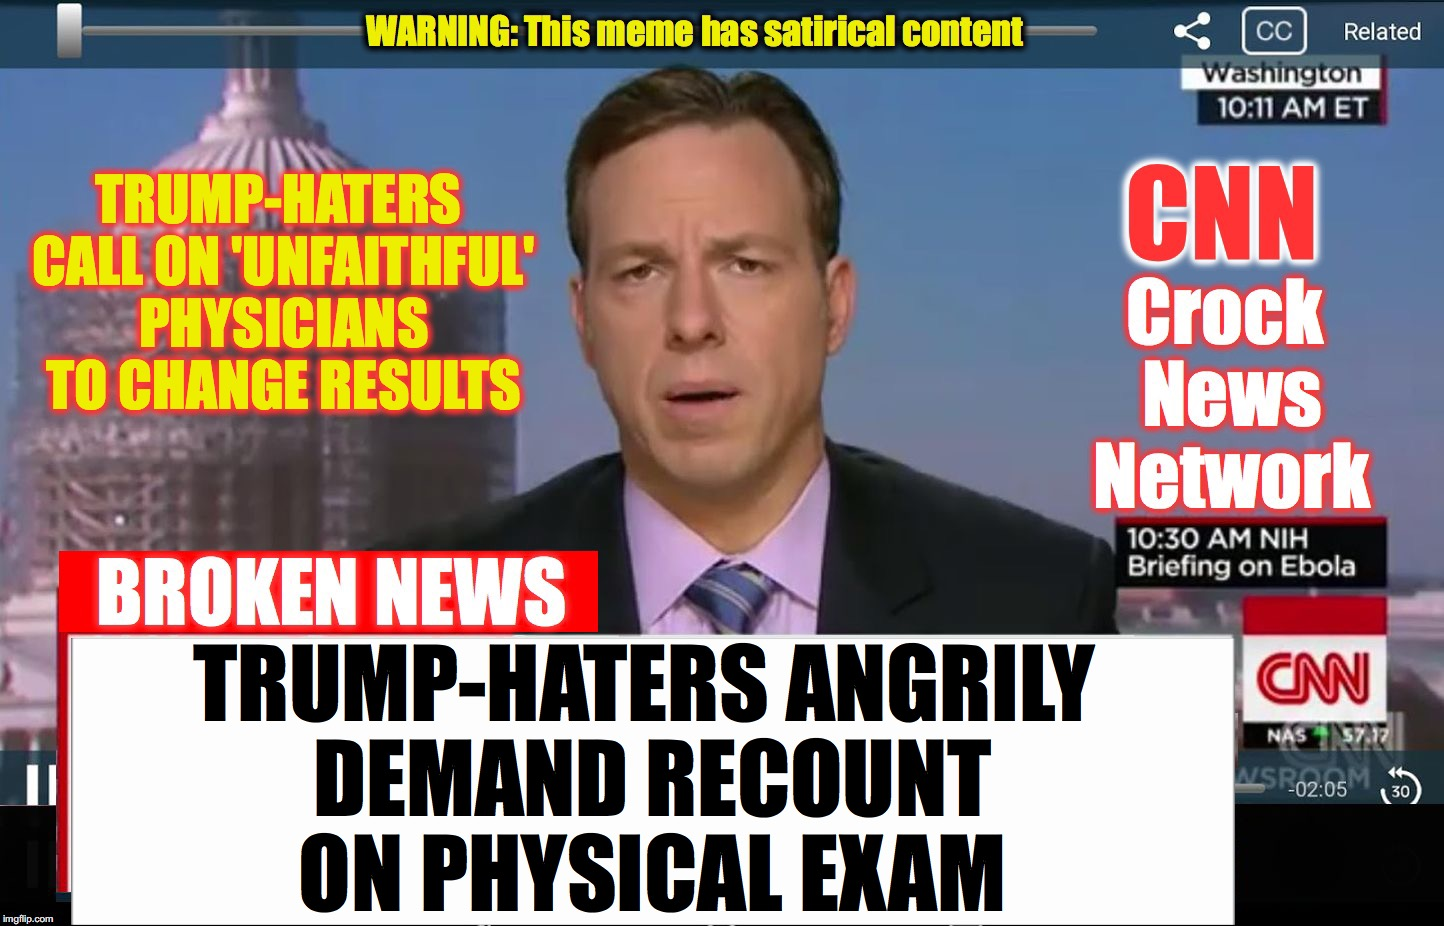 CNN Crock News Network | TRUMP-HATERS CALL ON 'UNFAITHFUL' PHYSICIANS TO CHANGE RESULTS TRUMP-HATERS ANGRILY DEMAND RECOUNT ON PHYSICAL EXAM | image tagged in cnn crock news network | made w/ Imgflip meme maker